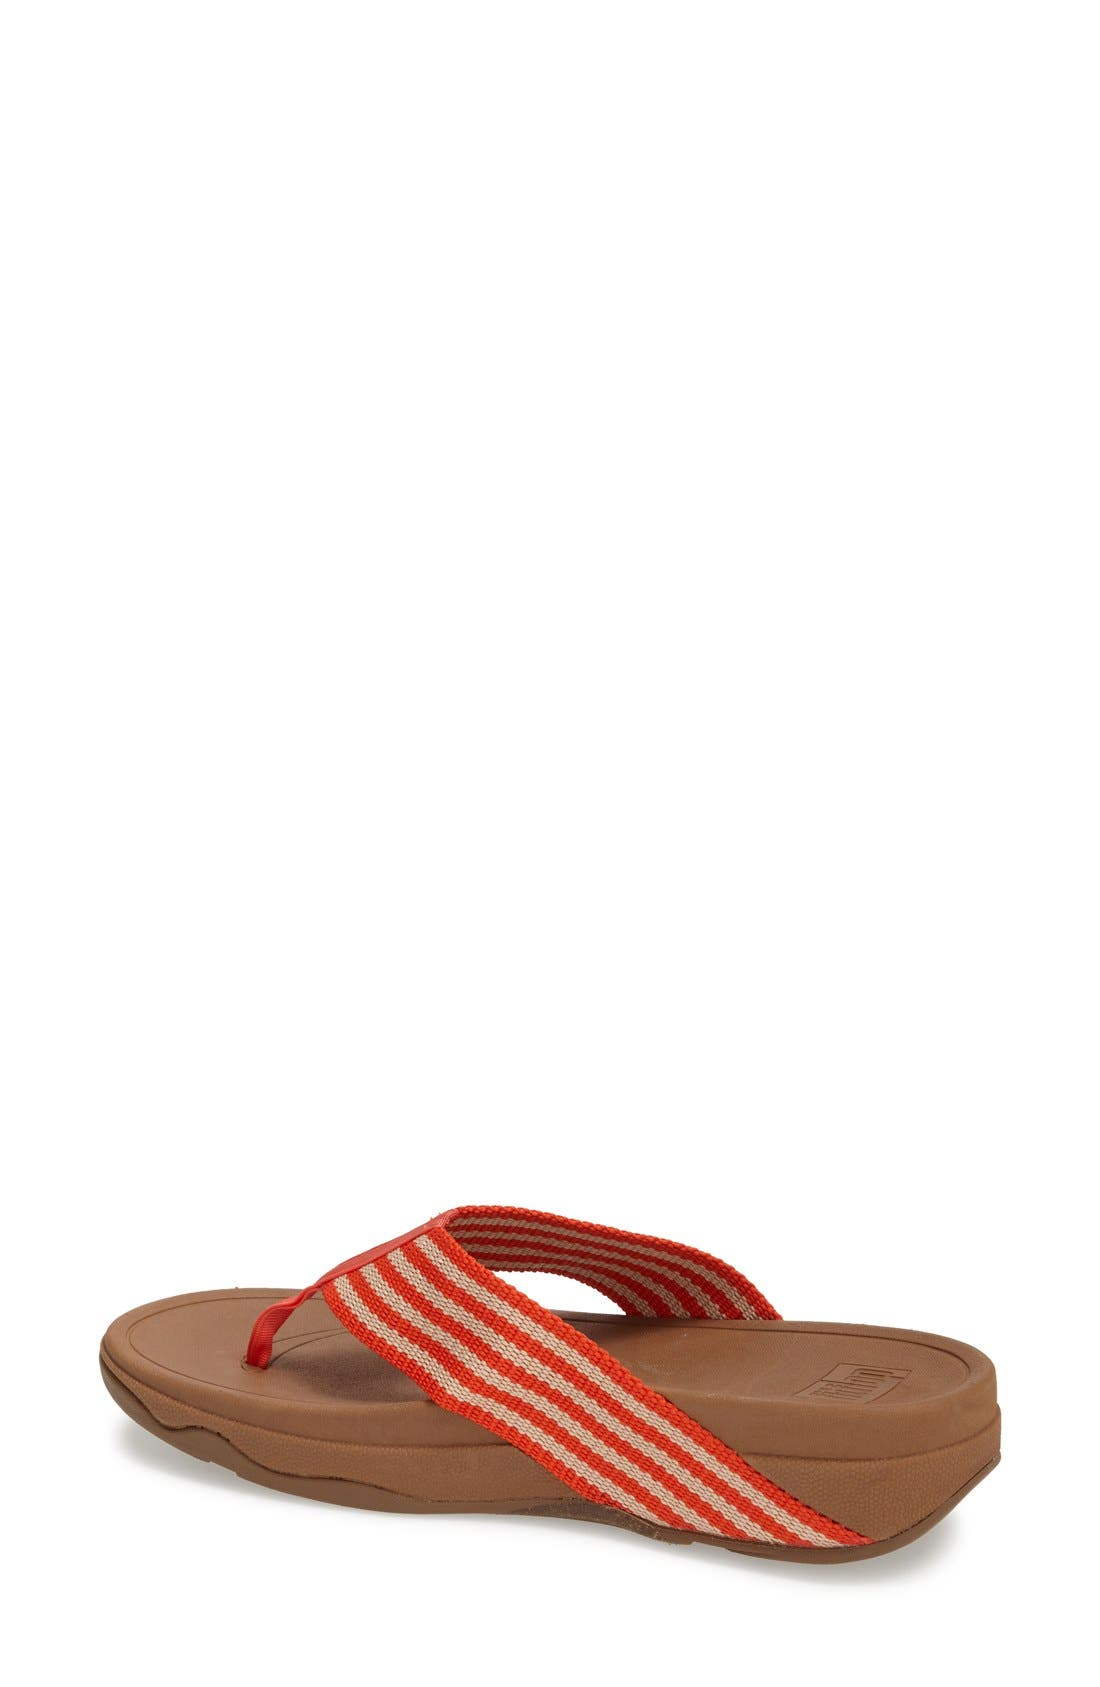 'Surfa' Thong Sandal,                             Alternate thumbnail 16, color,